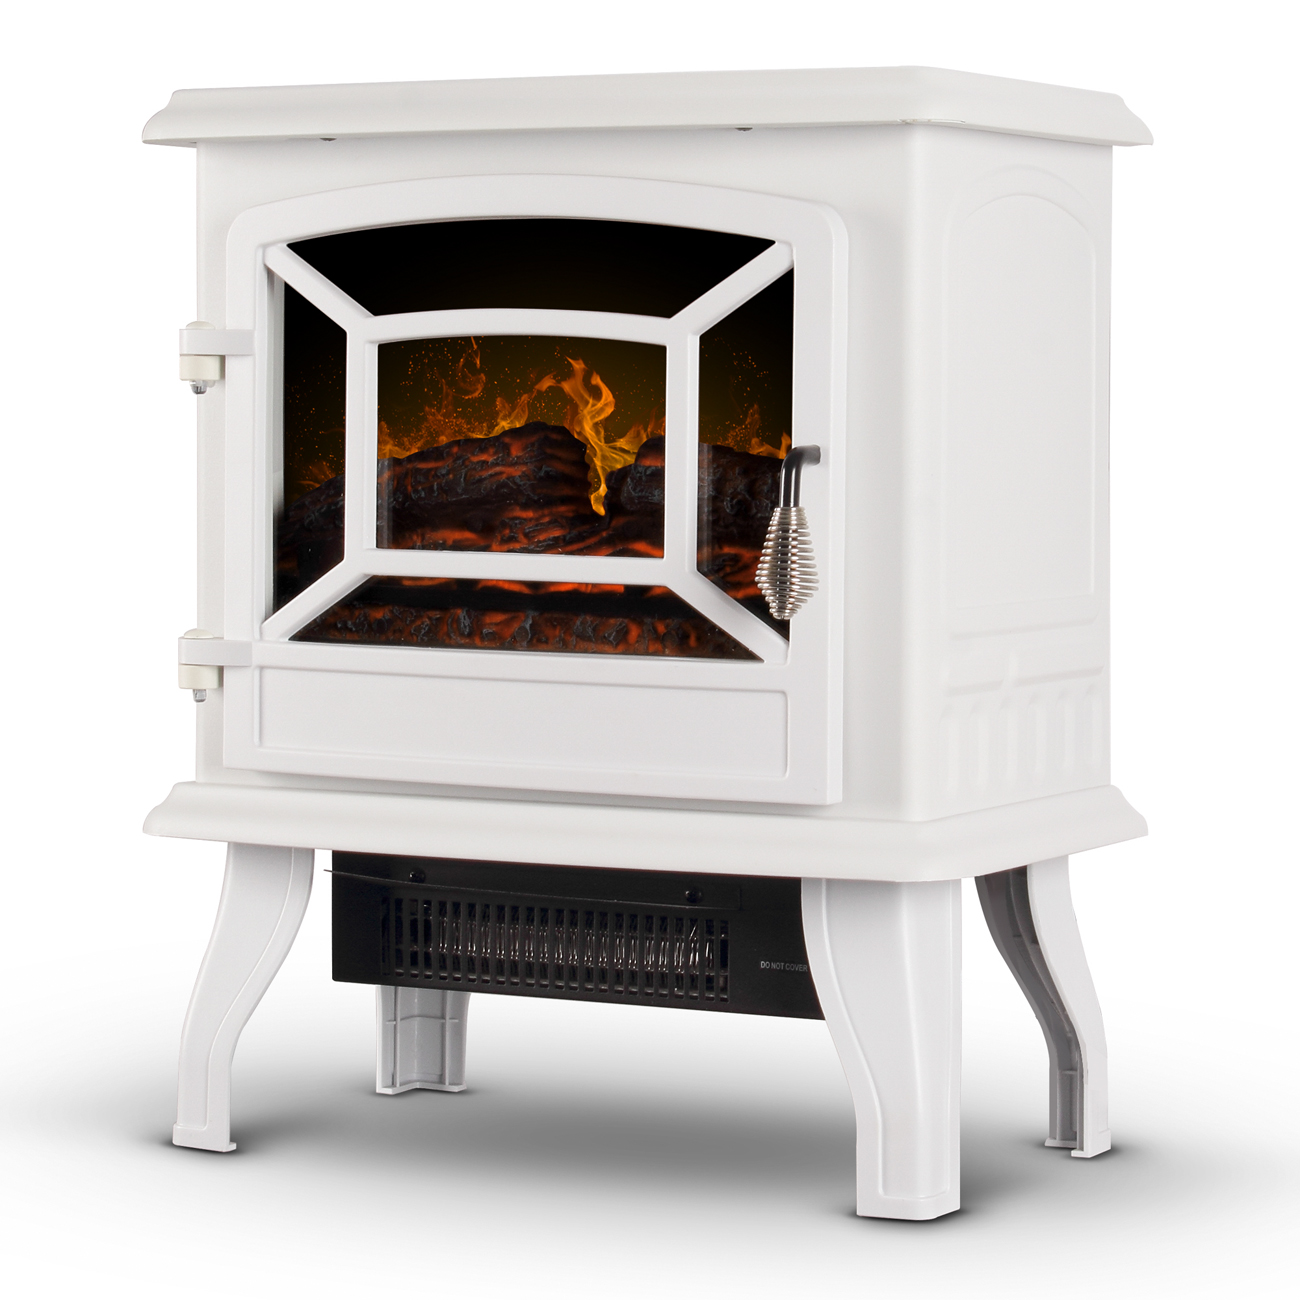 "DELLA 17"" Adjustable Flame Brightness Thermostat Fireplace Stove Heater 1400-Watts, White"